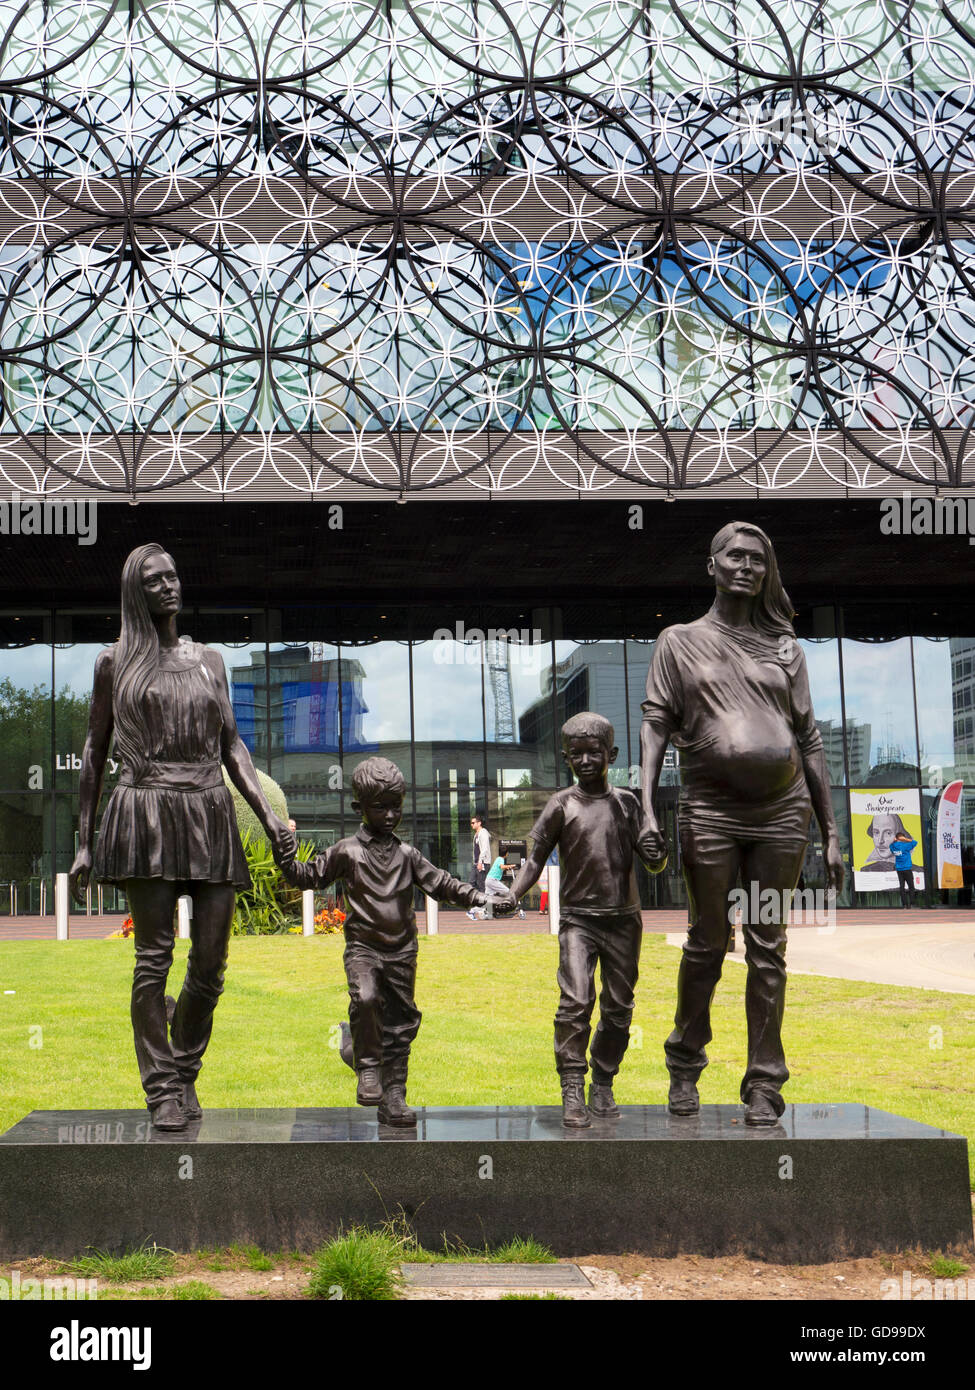 Une véritable sculpture de la famille Birmingham par Gillian Wearing dans Centenary Square Birmingham West Photo Stock